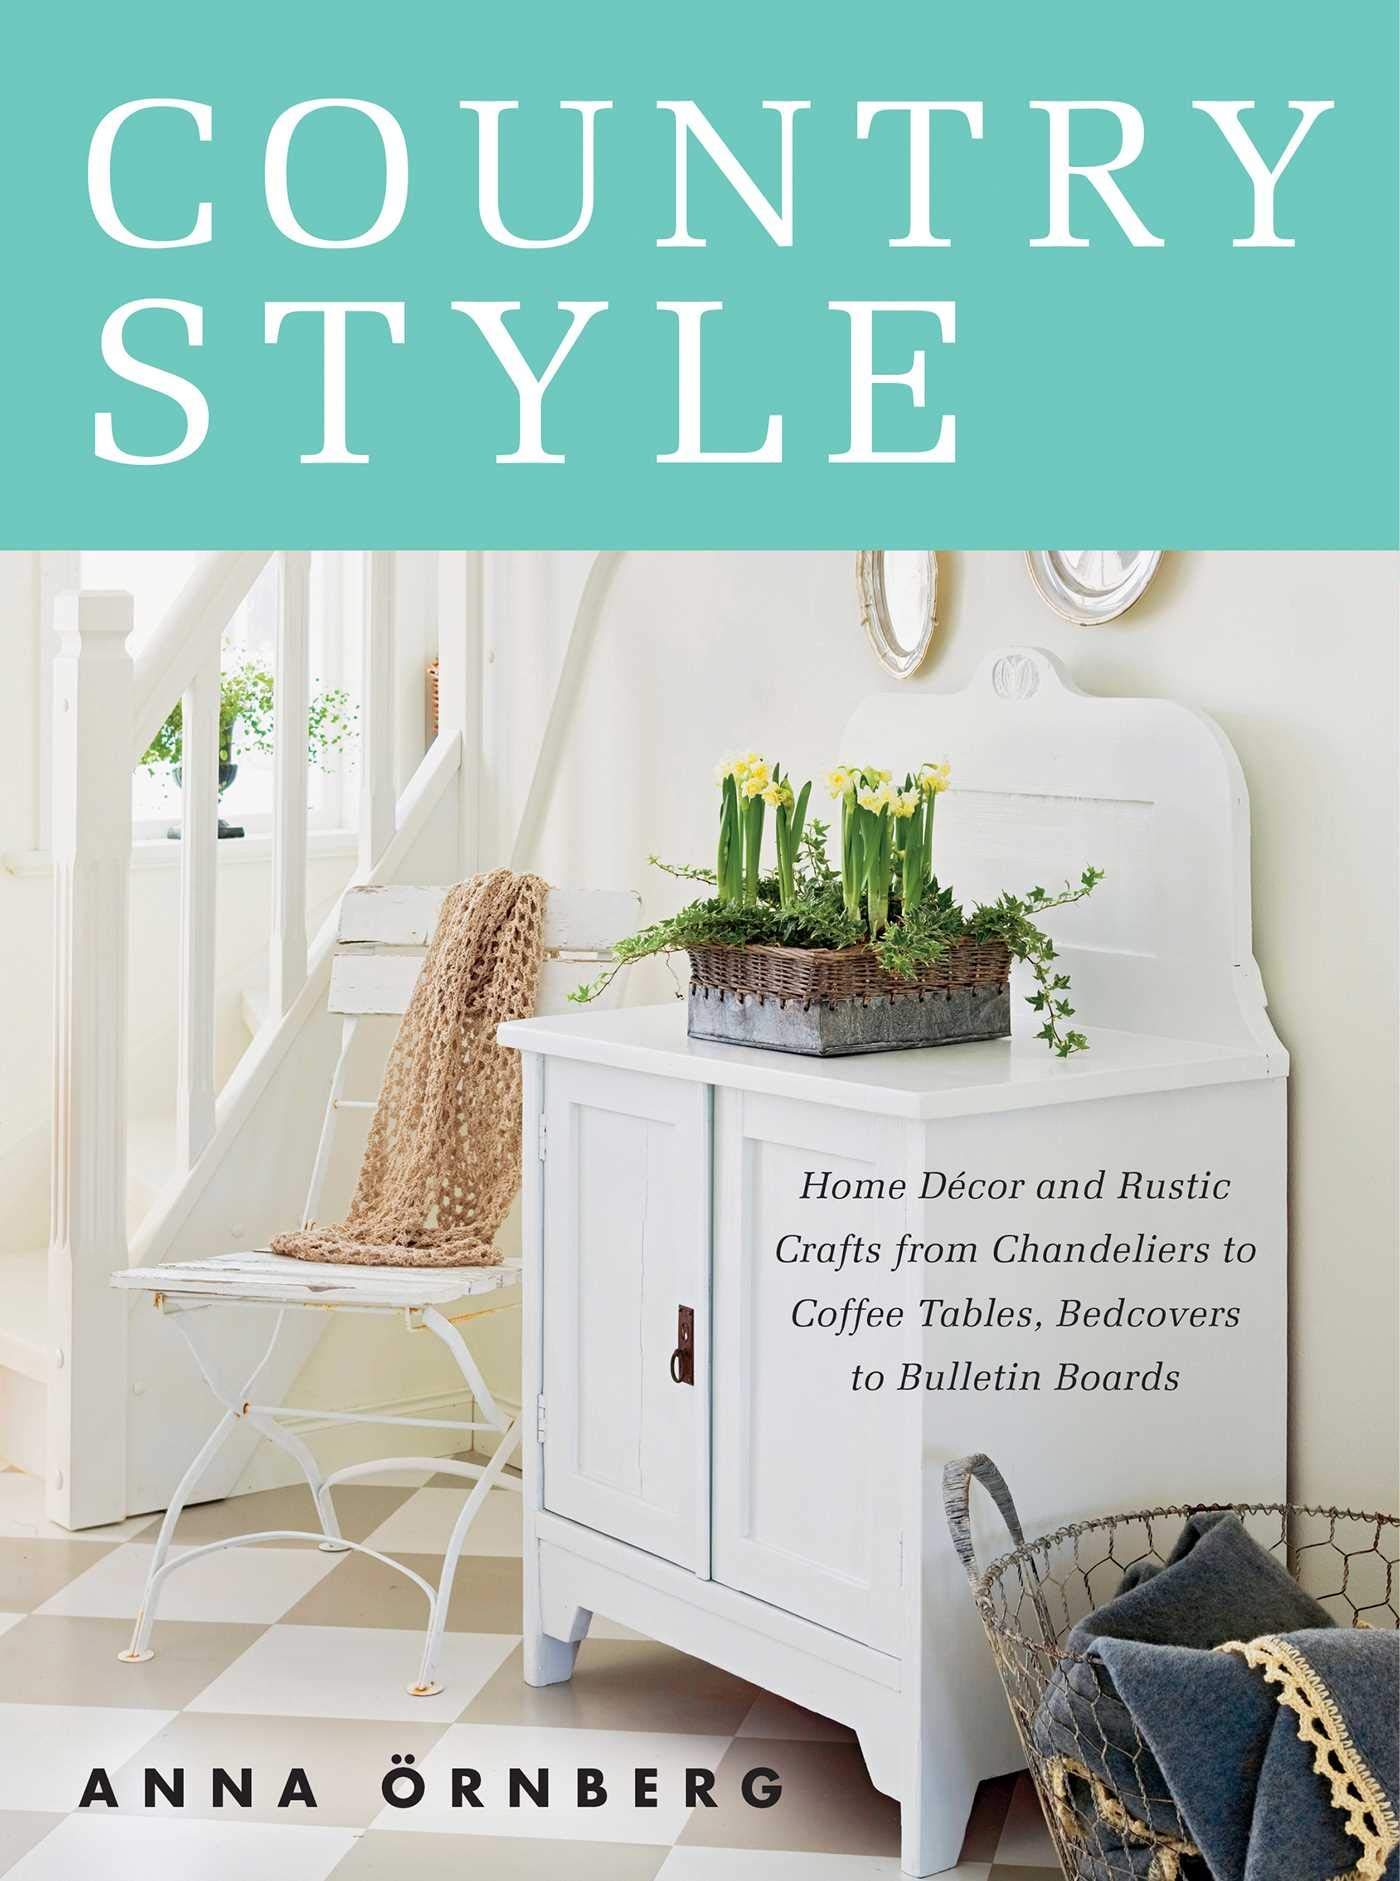 Country Style Home Decor And Rustic Crafts From Chandeliers To Coffee Tables Bedcovers To Bulletin Boards Ornberg Anna 9781628736434 Amazon Com Books